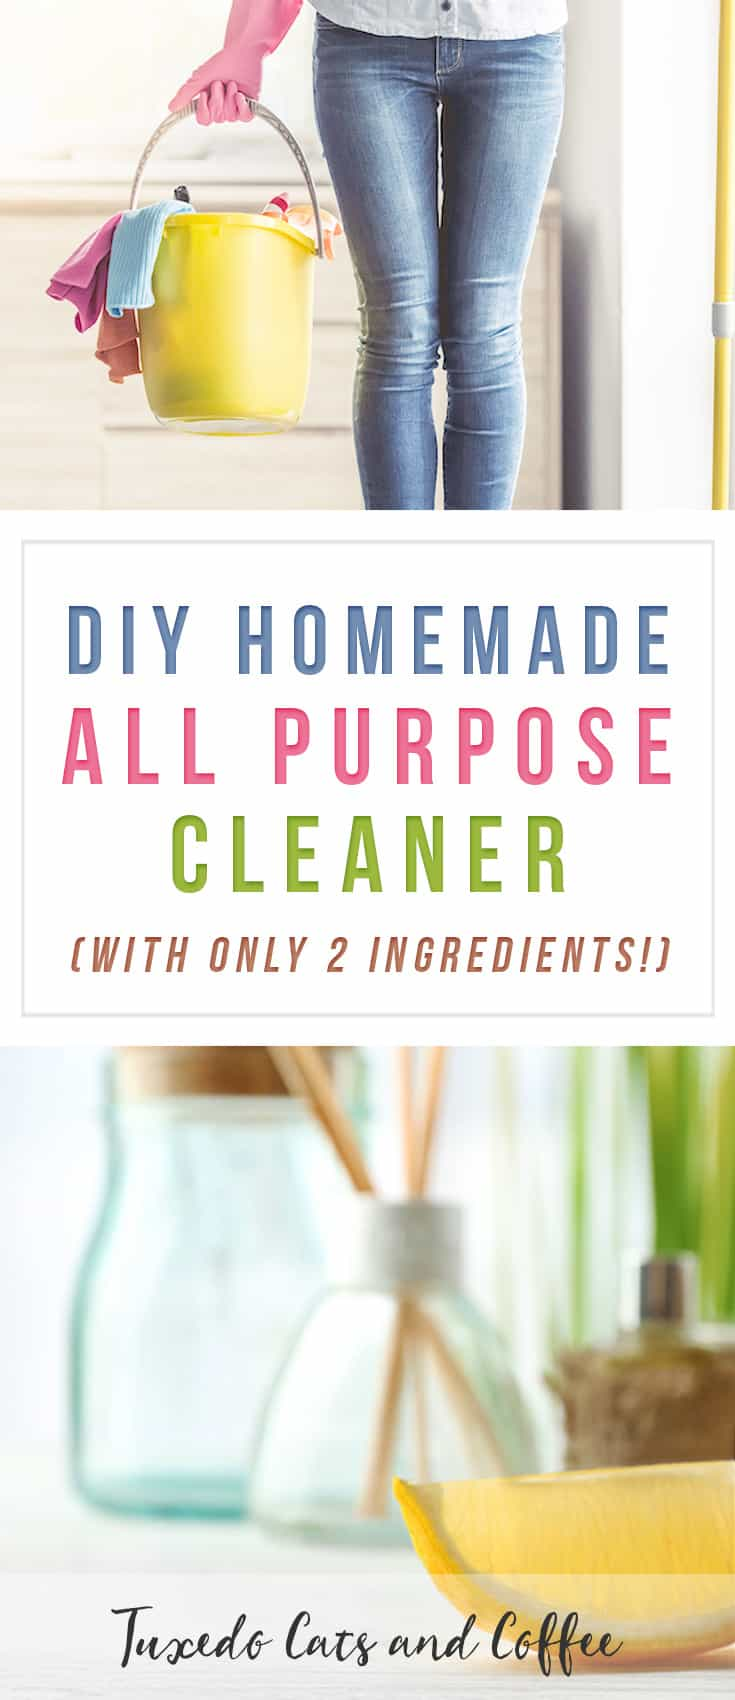 I'm not a very domestic person. I've probably disappointed my mother and grandmother, but in the meantime I'll continue microwaving my food and doing the laundry only when I run out of clean underwear. :) Here is a frugal homemade cleaner, or a DIY homemade all purpose cleaner.